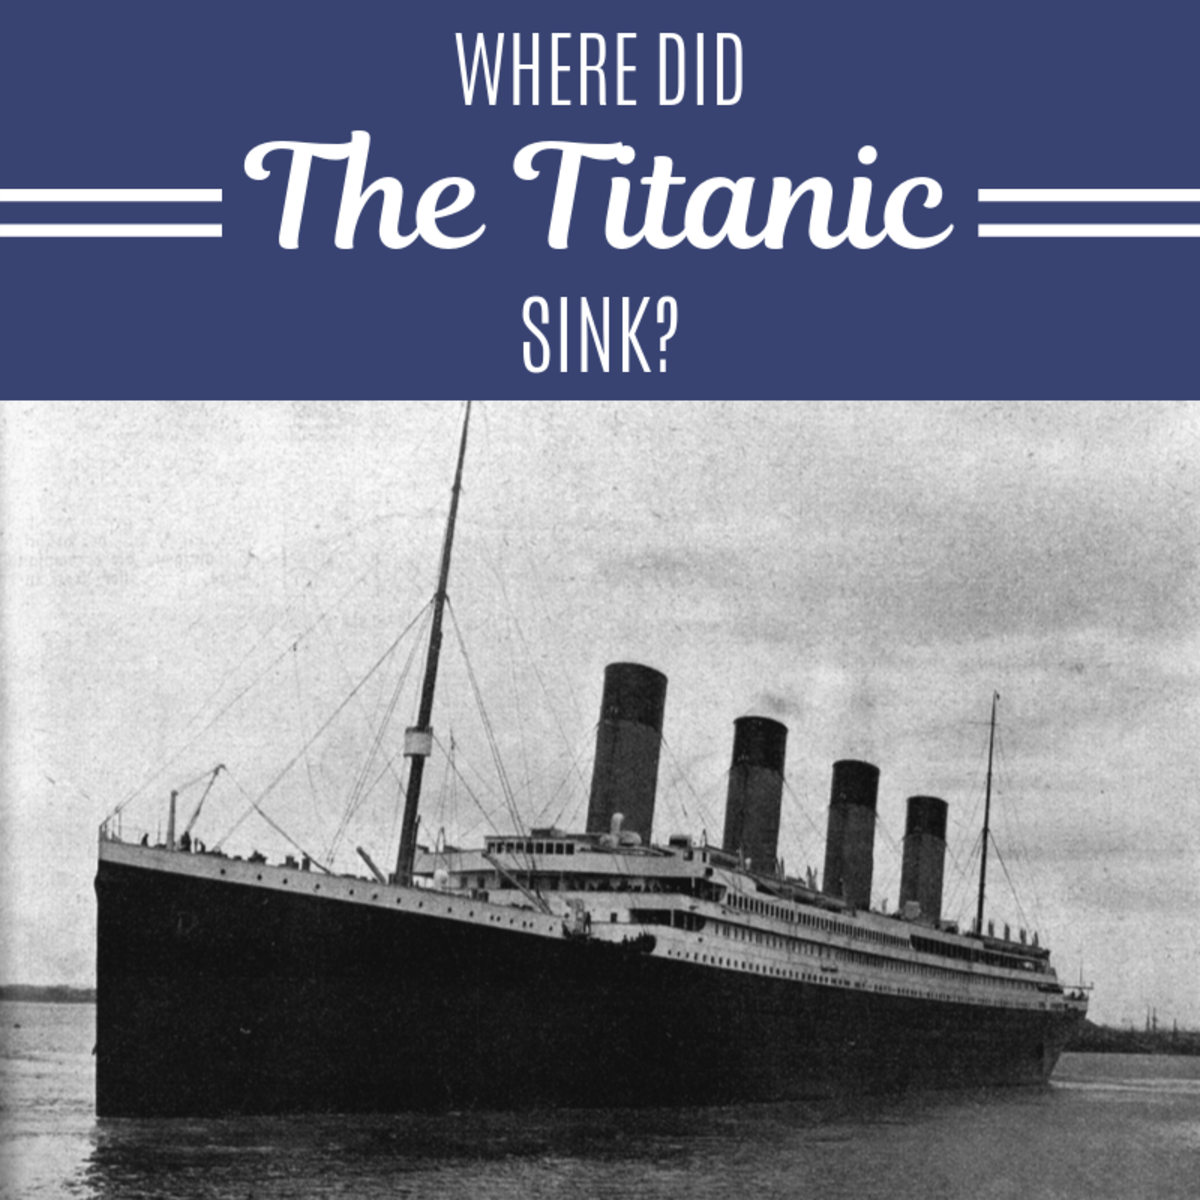 """On April 15th, 1912, """"the ship of dreams"""" collided with an iceberg and sank. This resulted in over 1,500 crew and passenger deaths."""